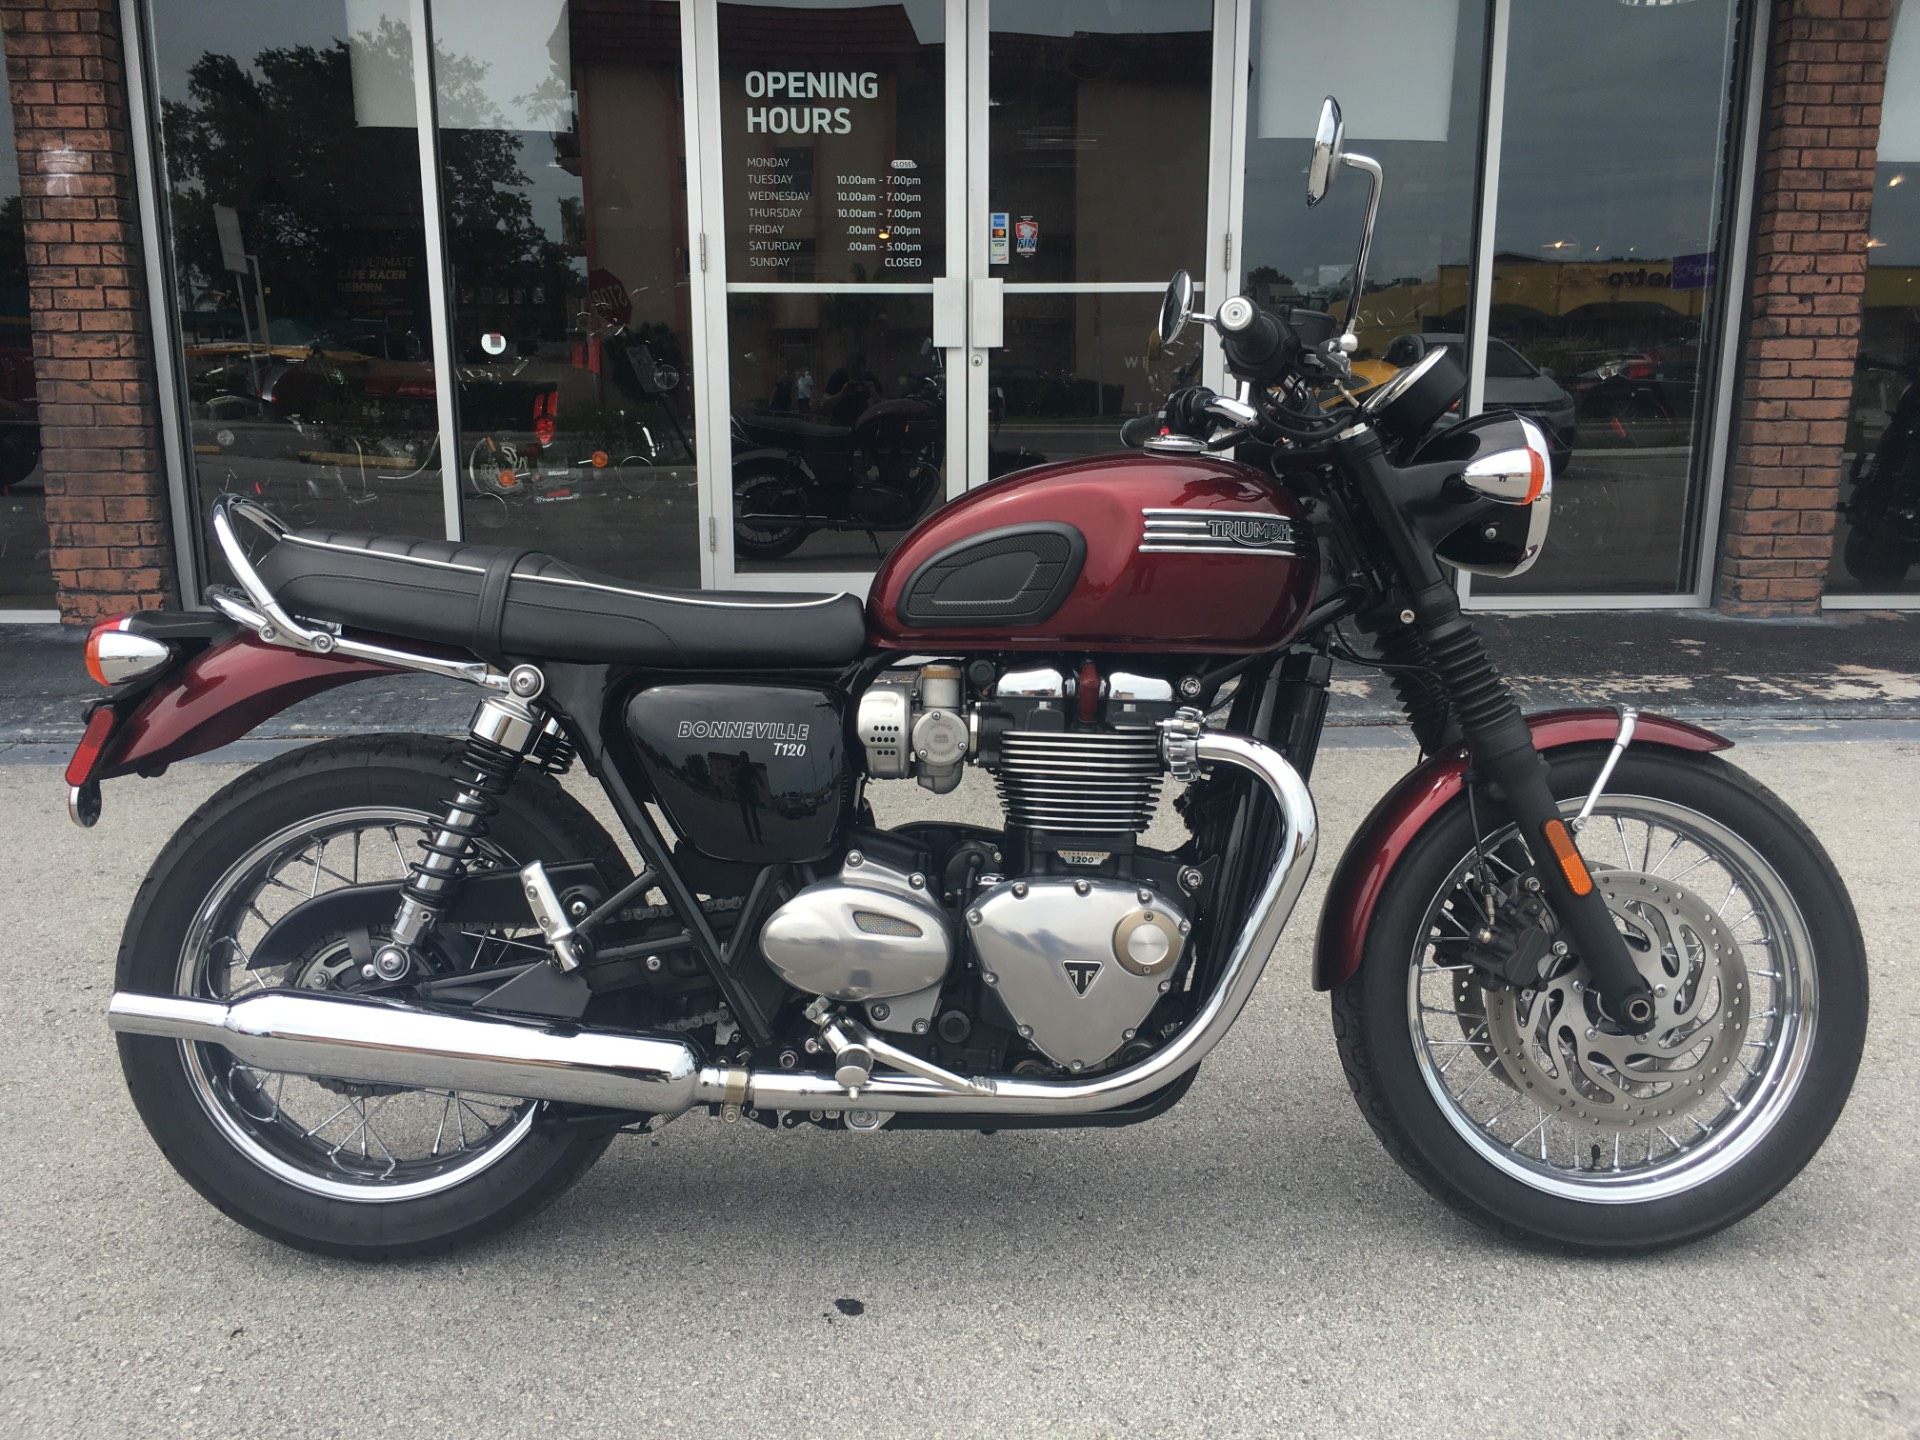 2017 Triumph Bonneville T120 in Miami, Florida